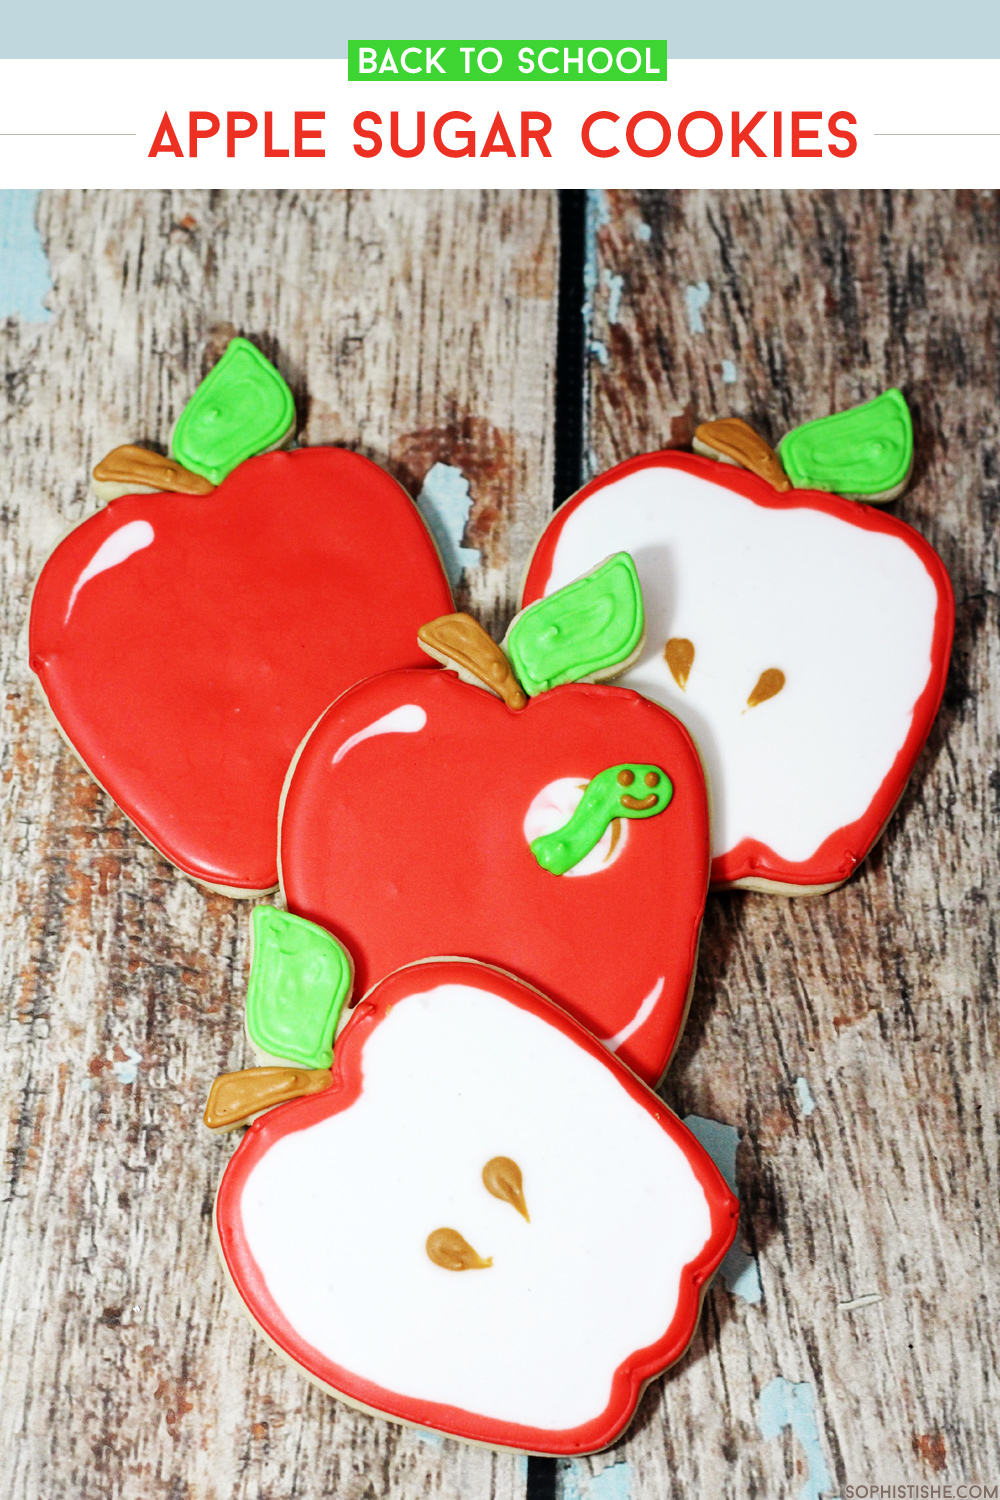 Back to School Apple Sugar Cookies via @sheenatatum